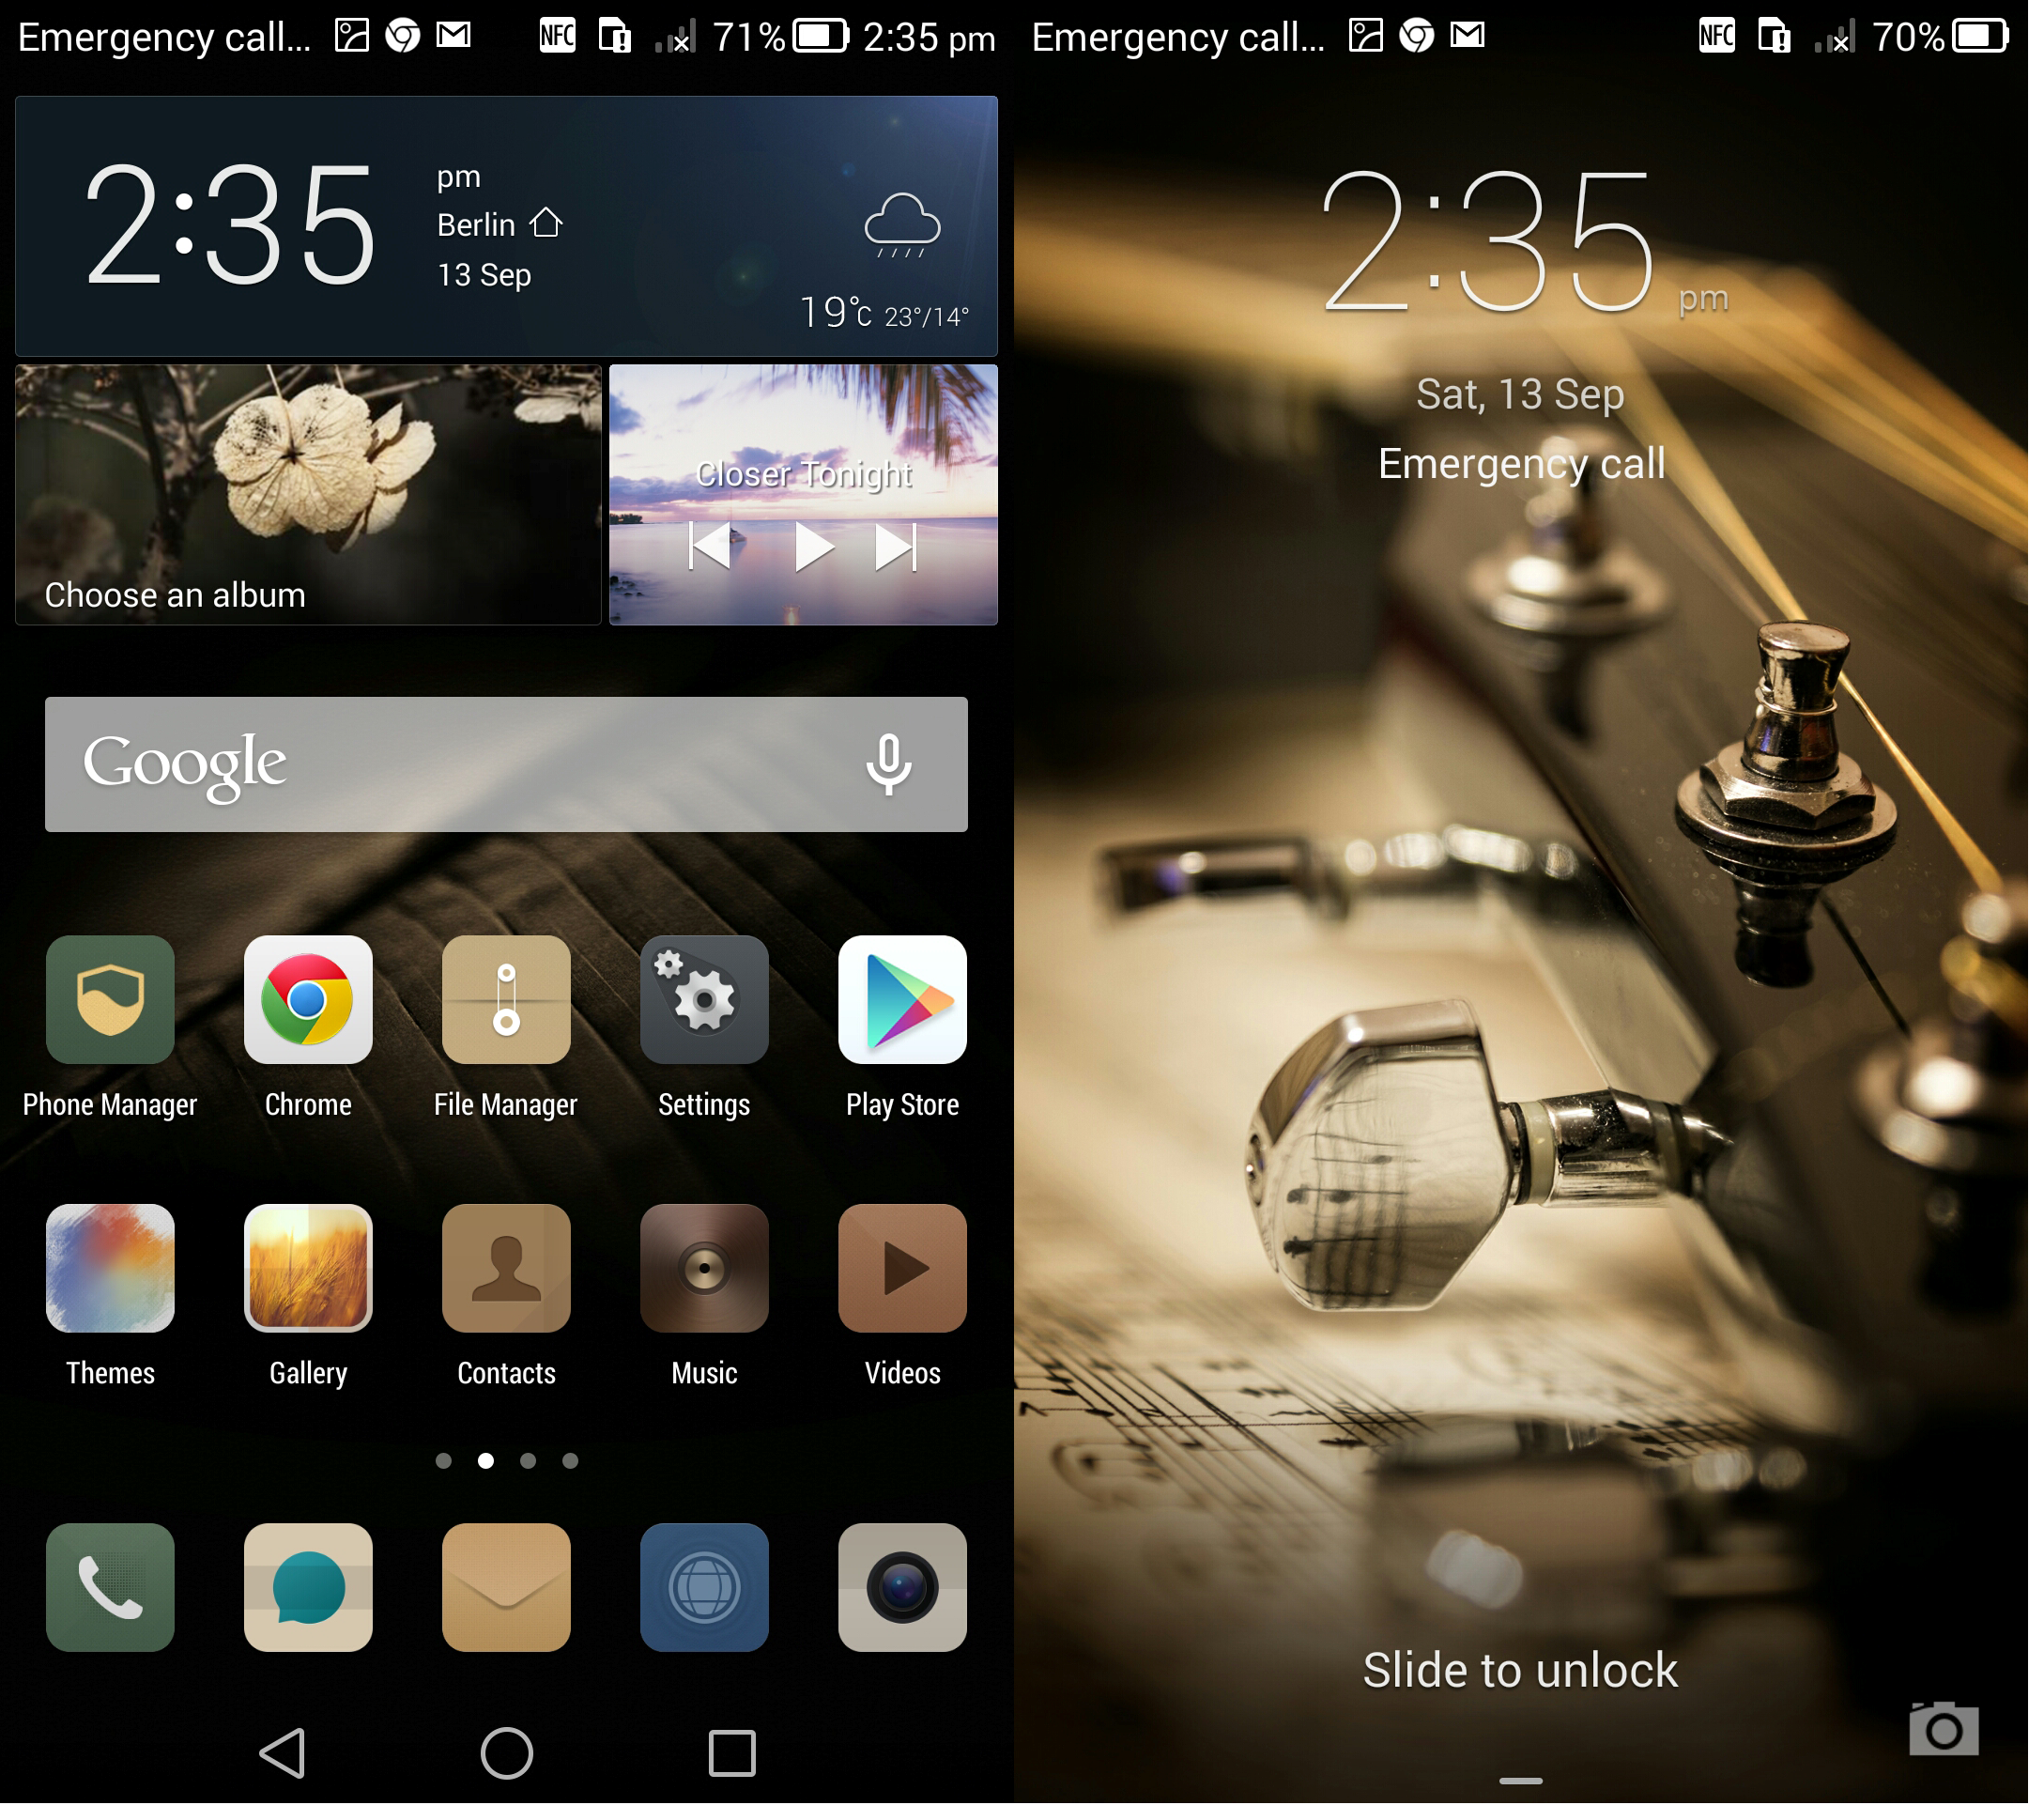 Huawei-Ascend-Mate-7-Simple-Life-Theme